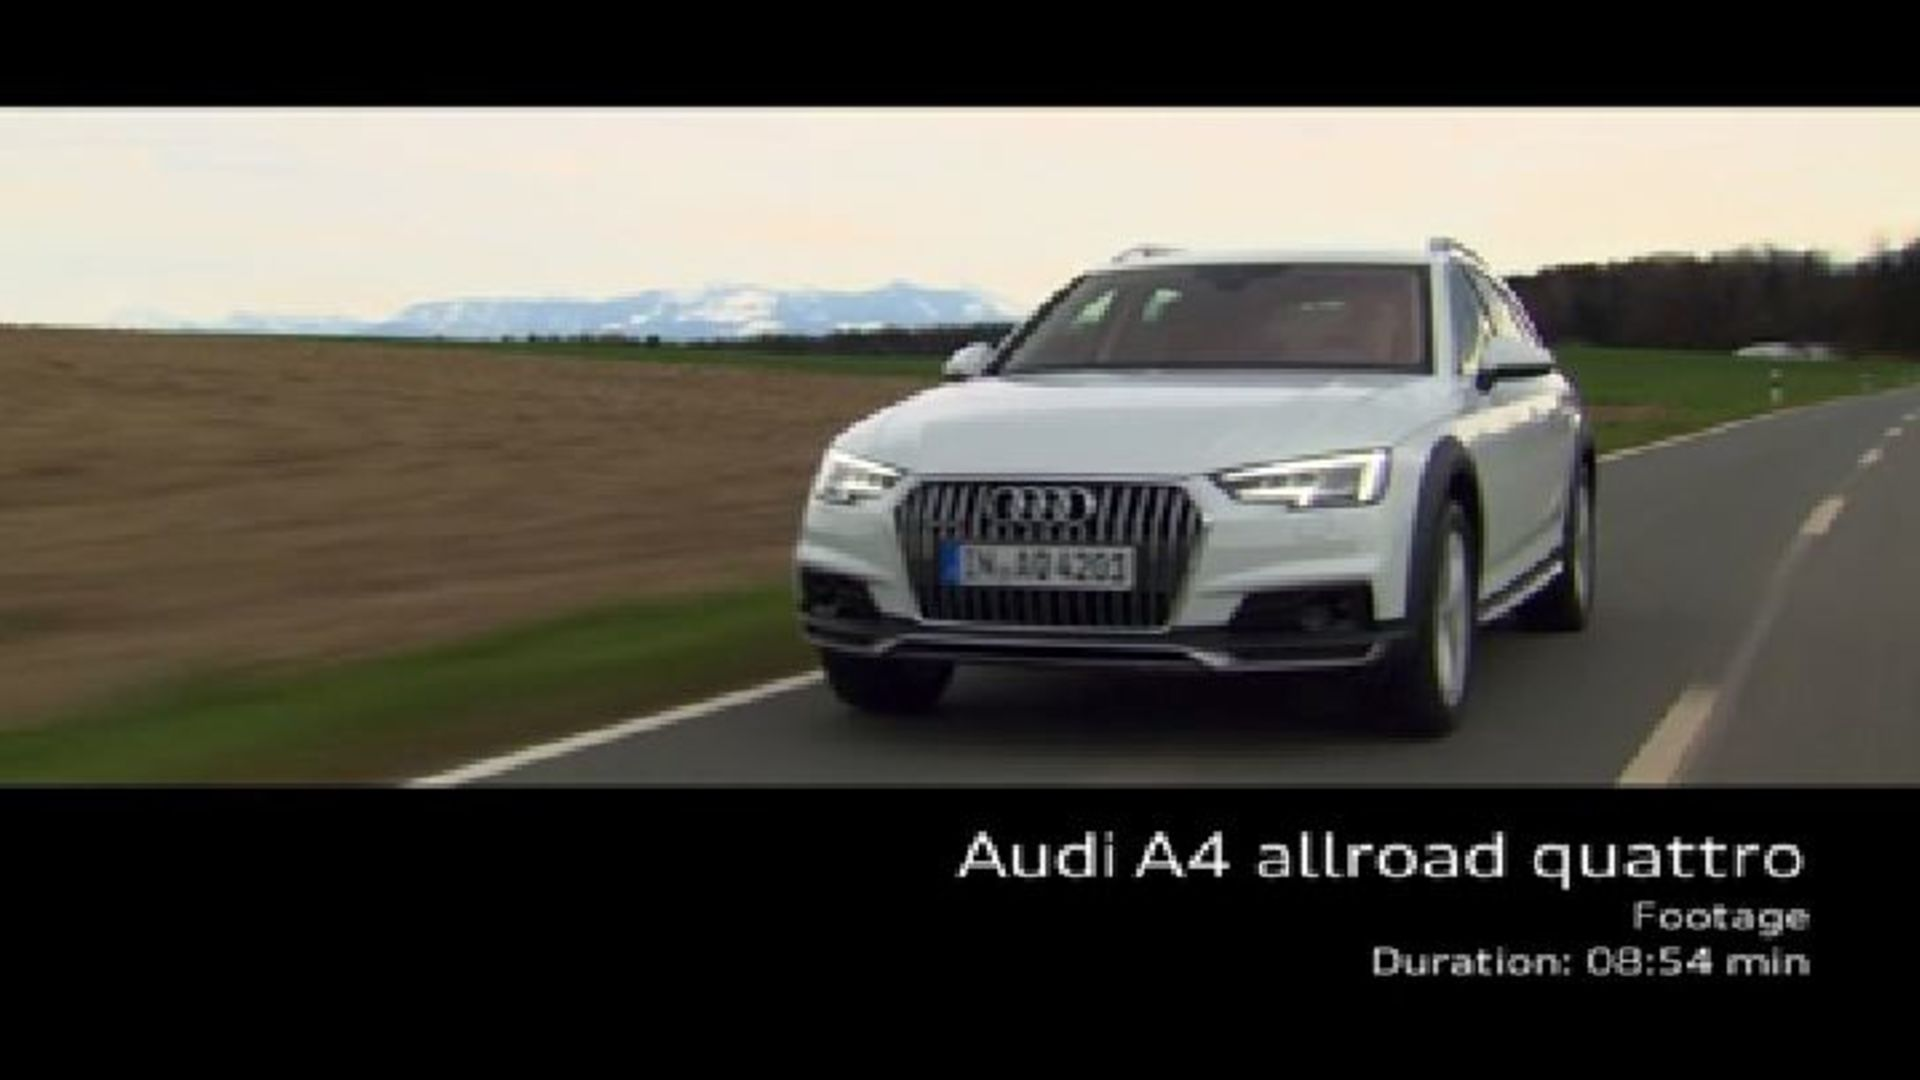 Audi A4 allroad quattro - Footage on Location